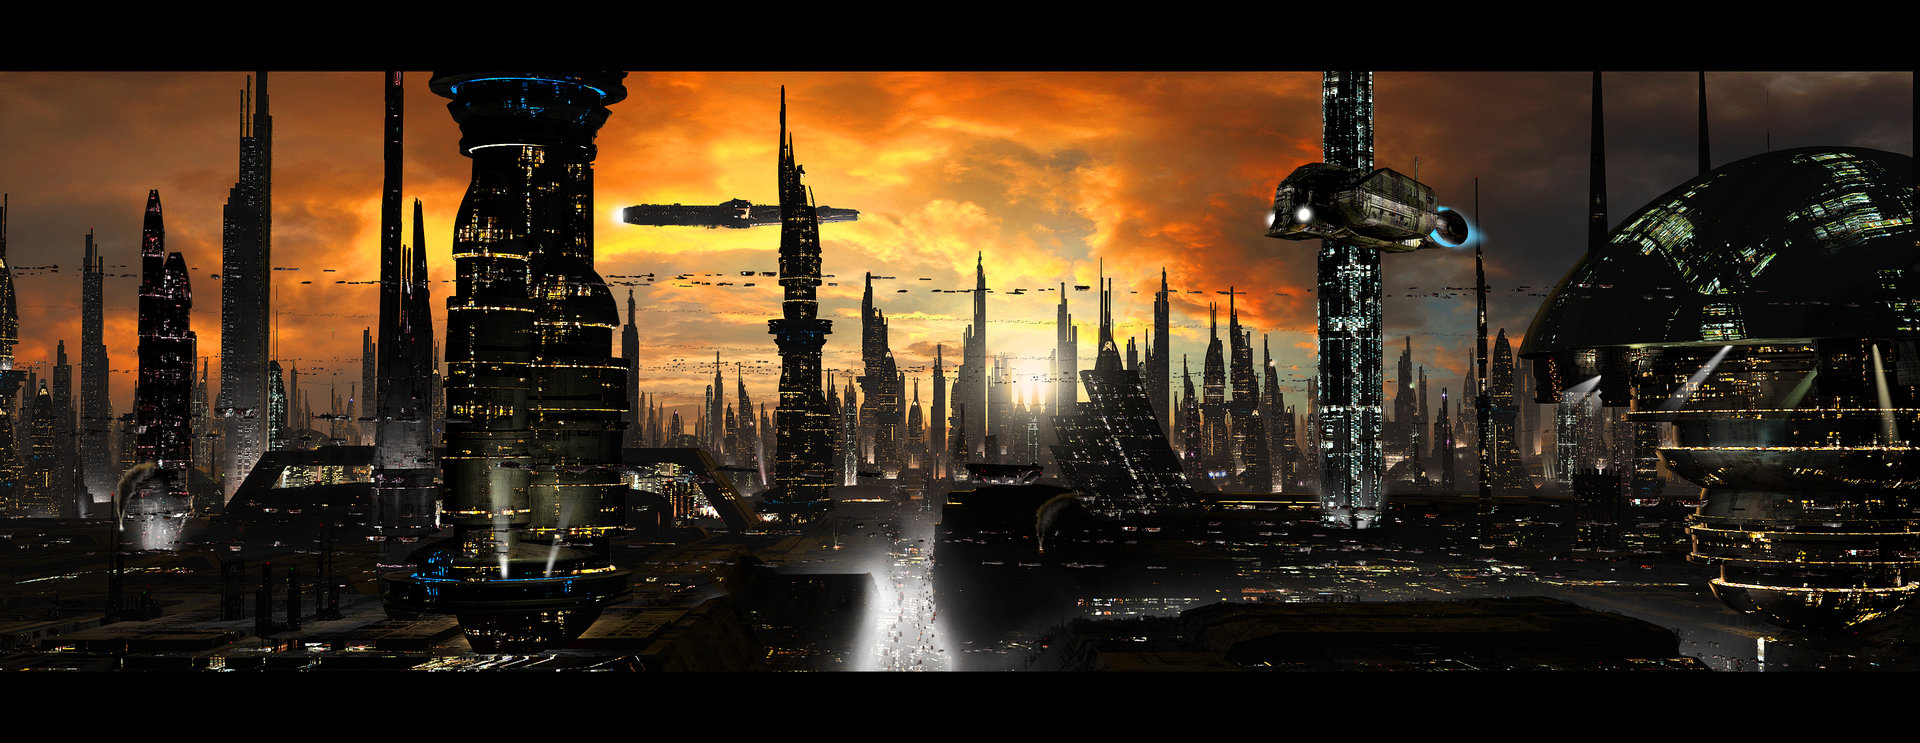 Scott richard futuristic city by rich35211